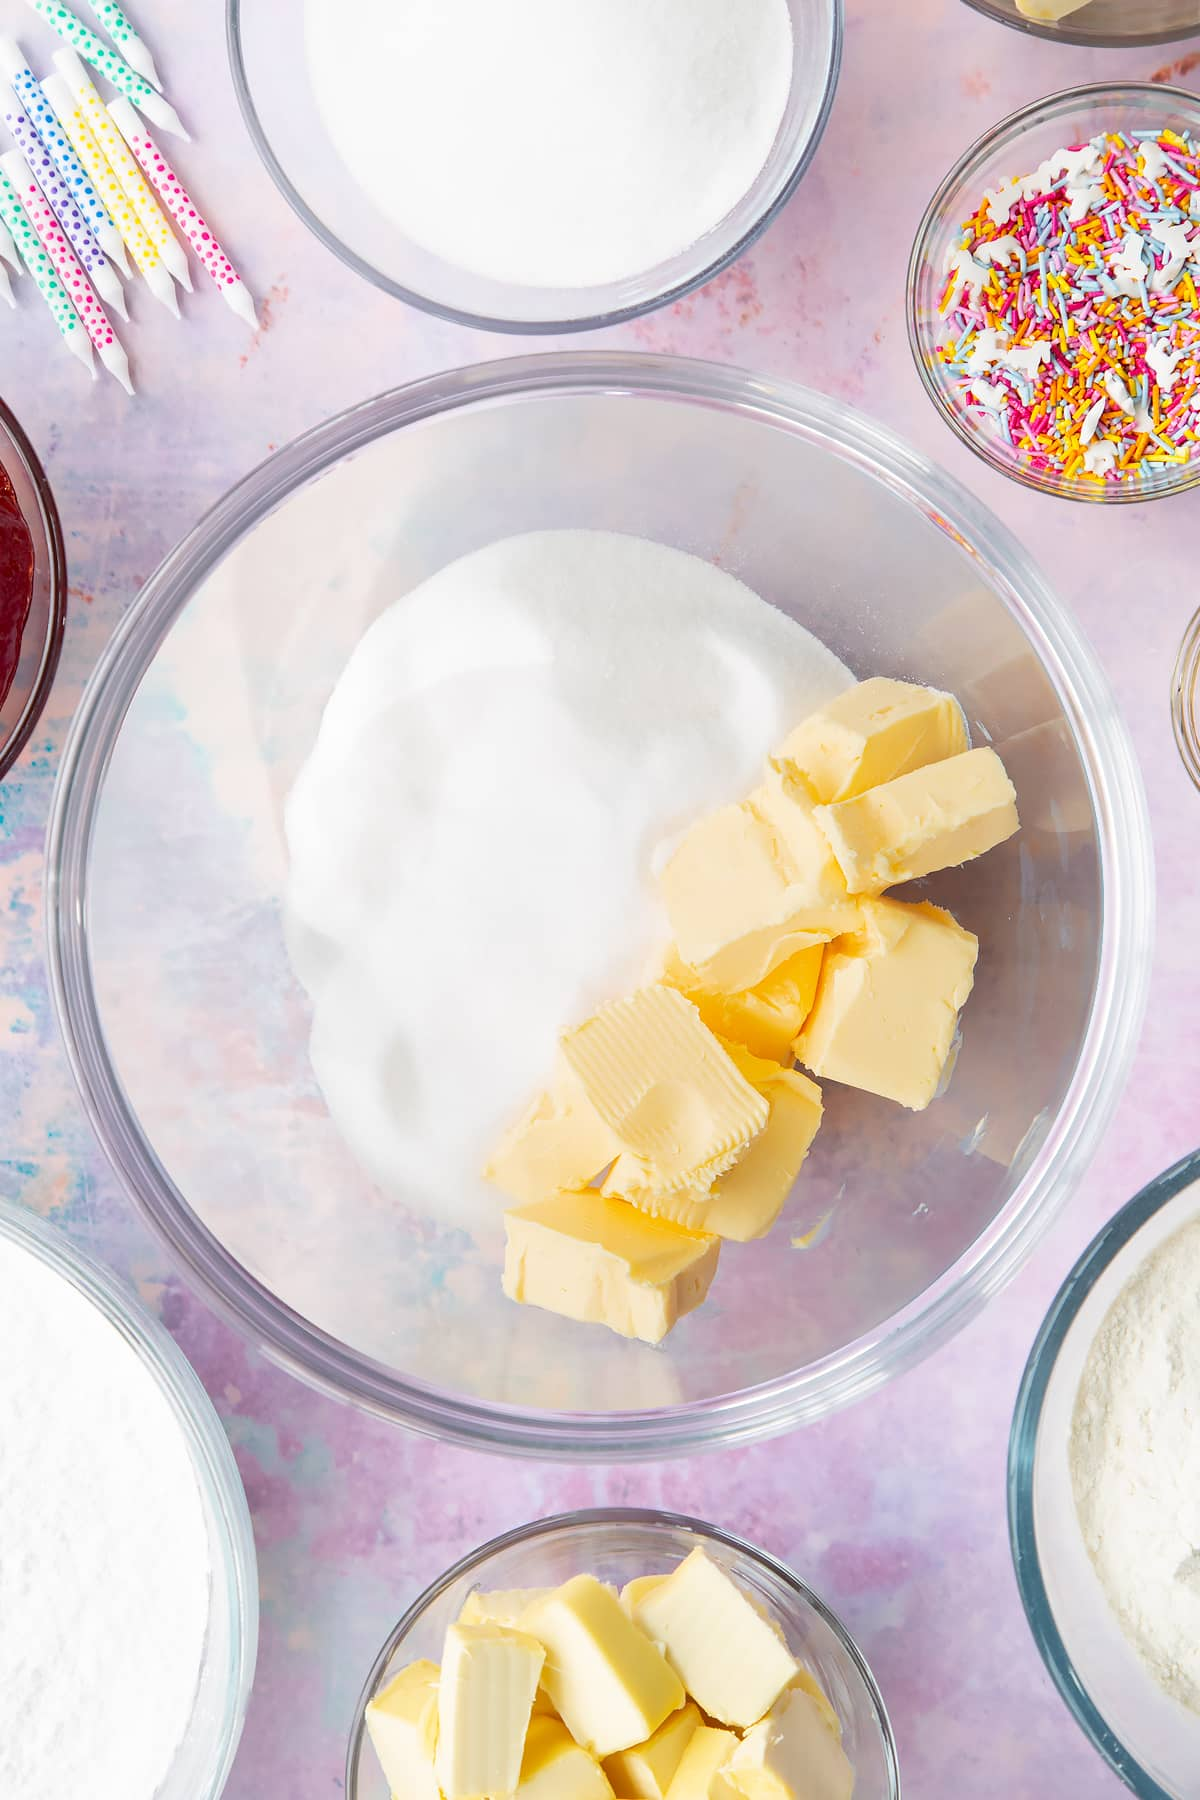 Vegan butter and caster sugar in a glass mixing bowl. Ingredients to make vegan birthday cake surround the bowl.